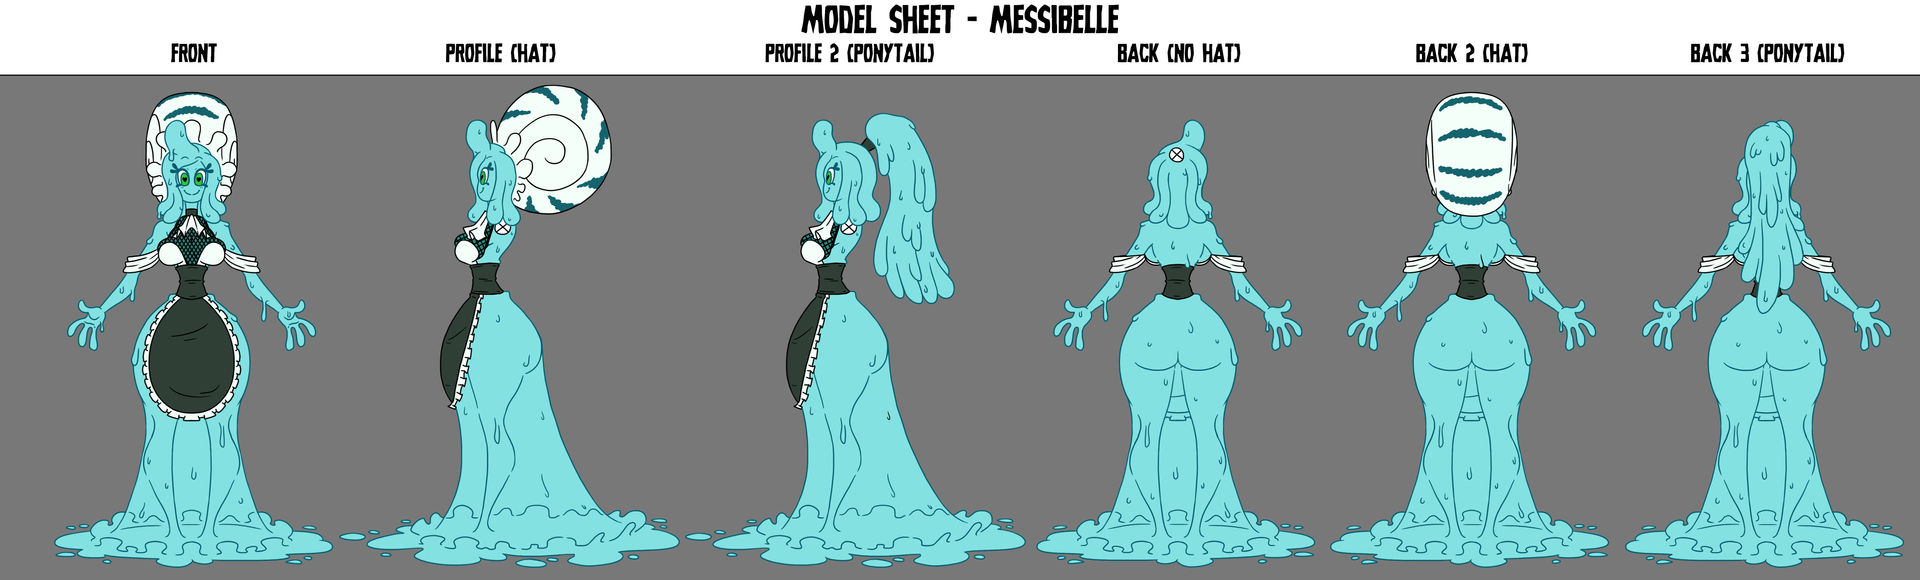 Crafty Concoction: Messibelle Model Sheet by DrCrafty